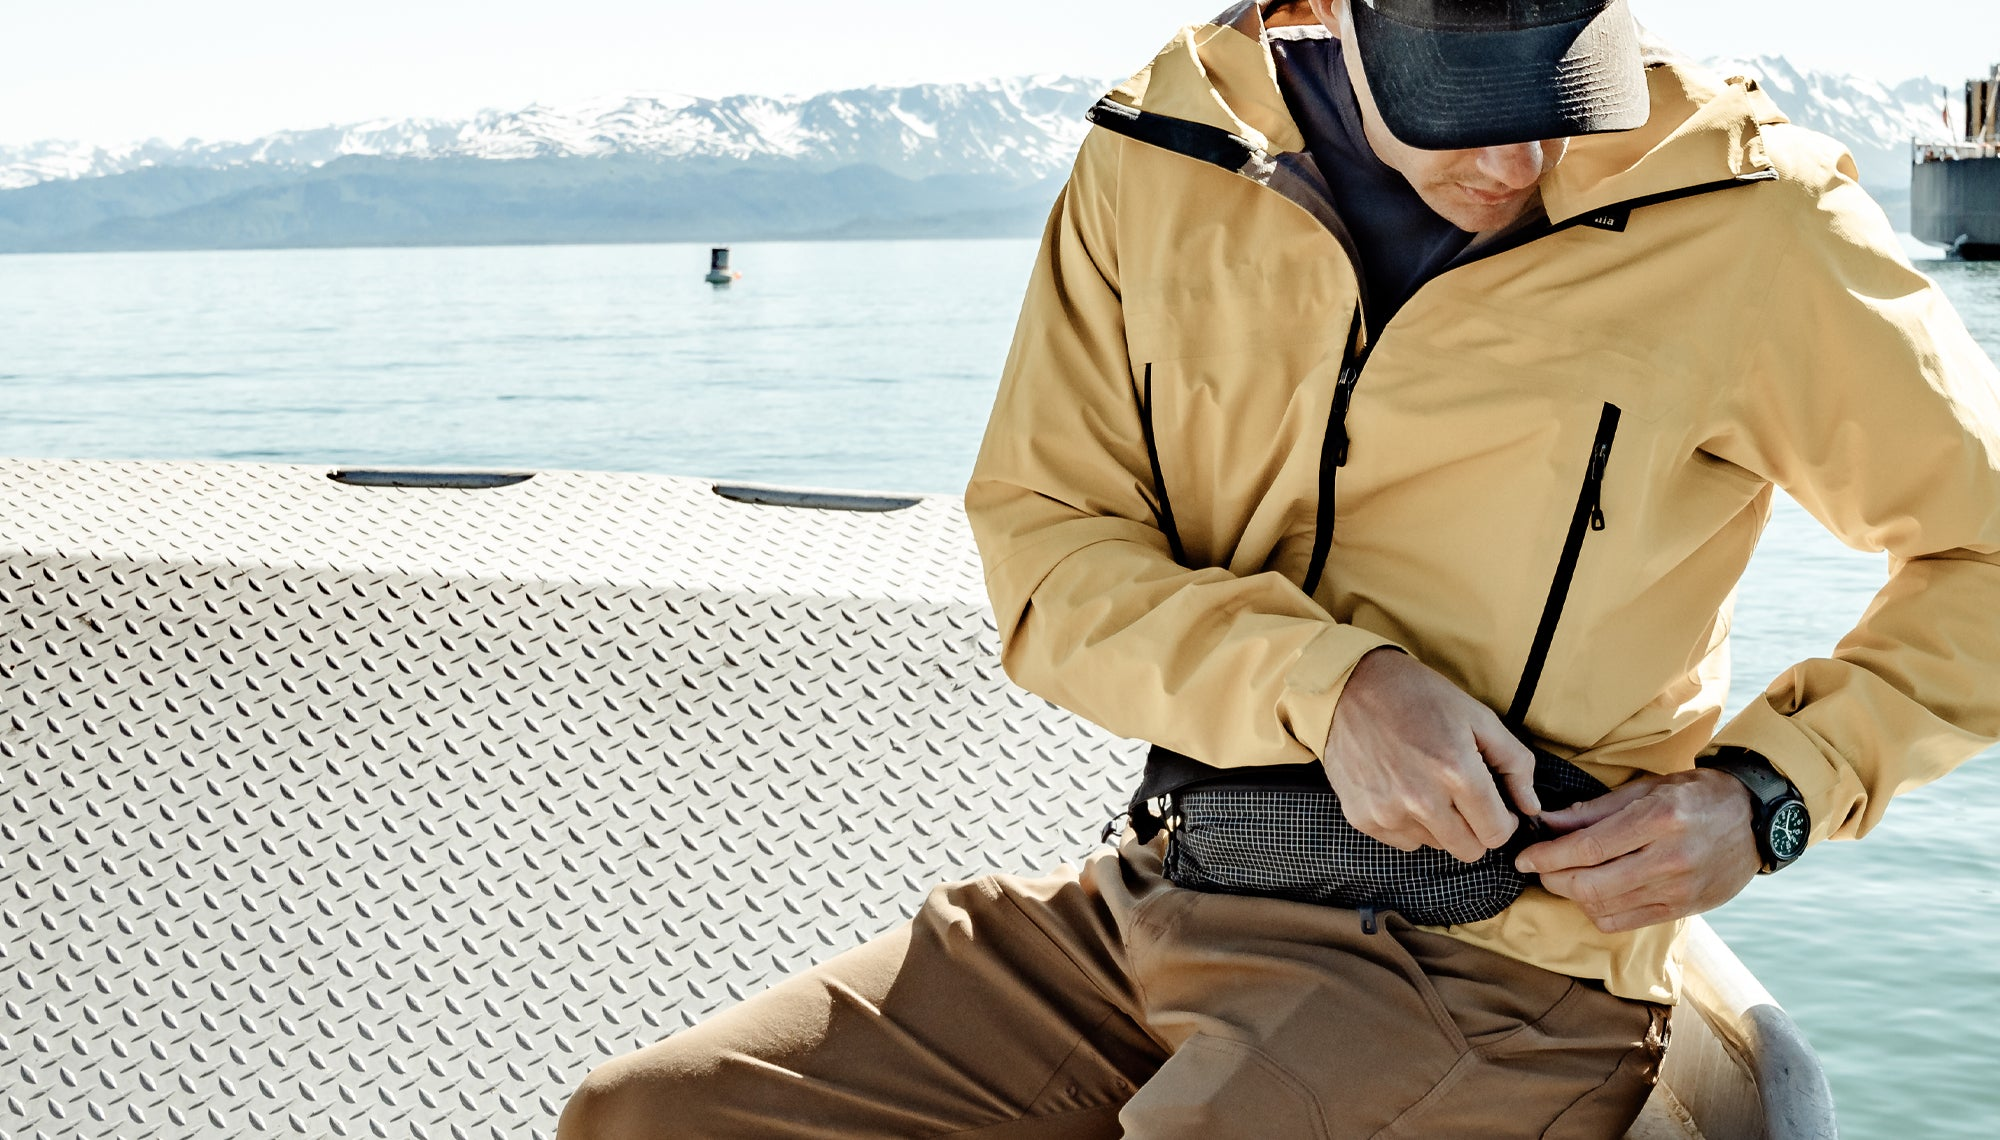 Man in boat, zipping up hip pack